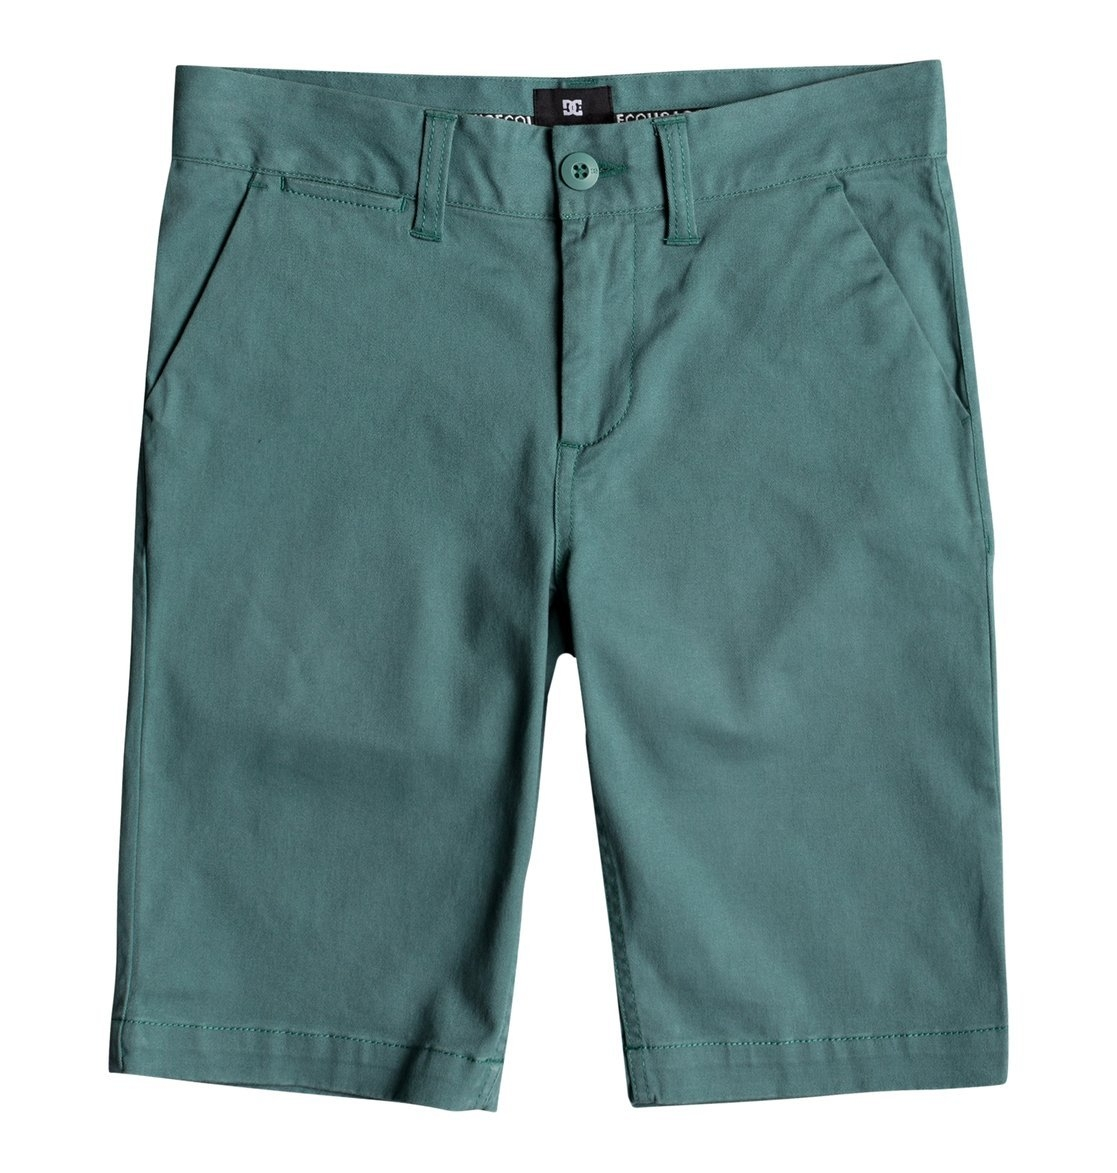 Dc Shoes Chino Short »Worker« - gratis ruilen op otto.nl